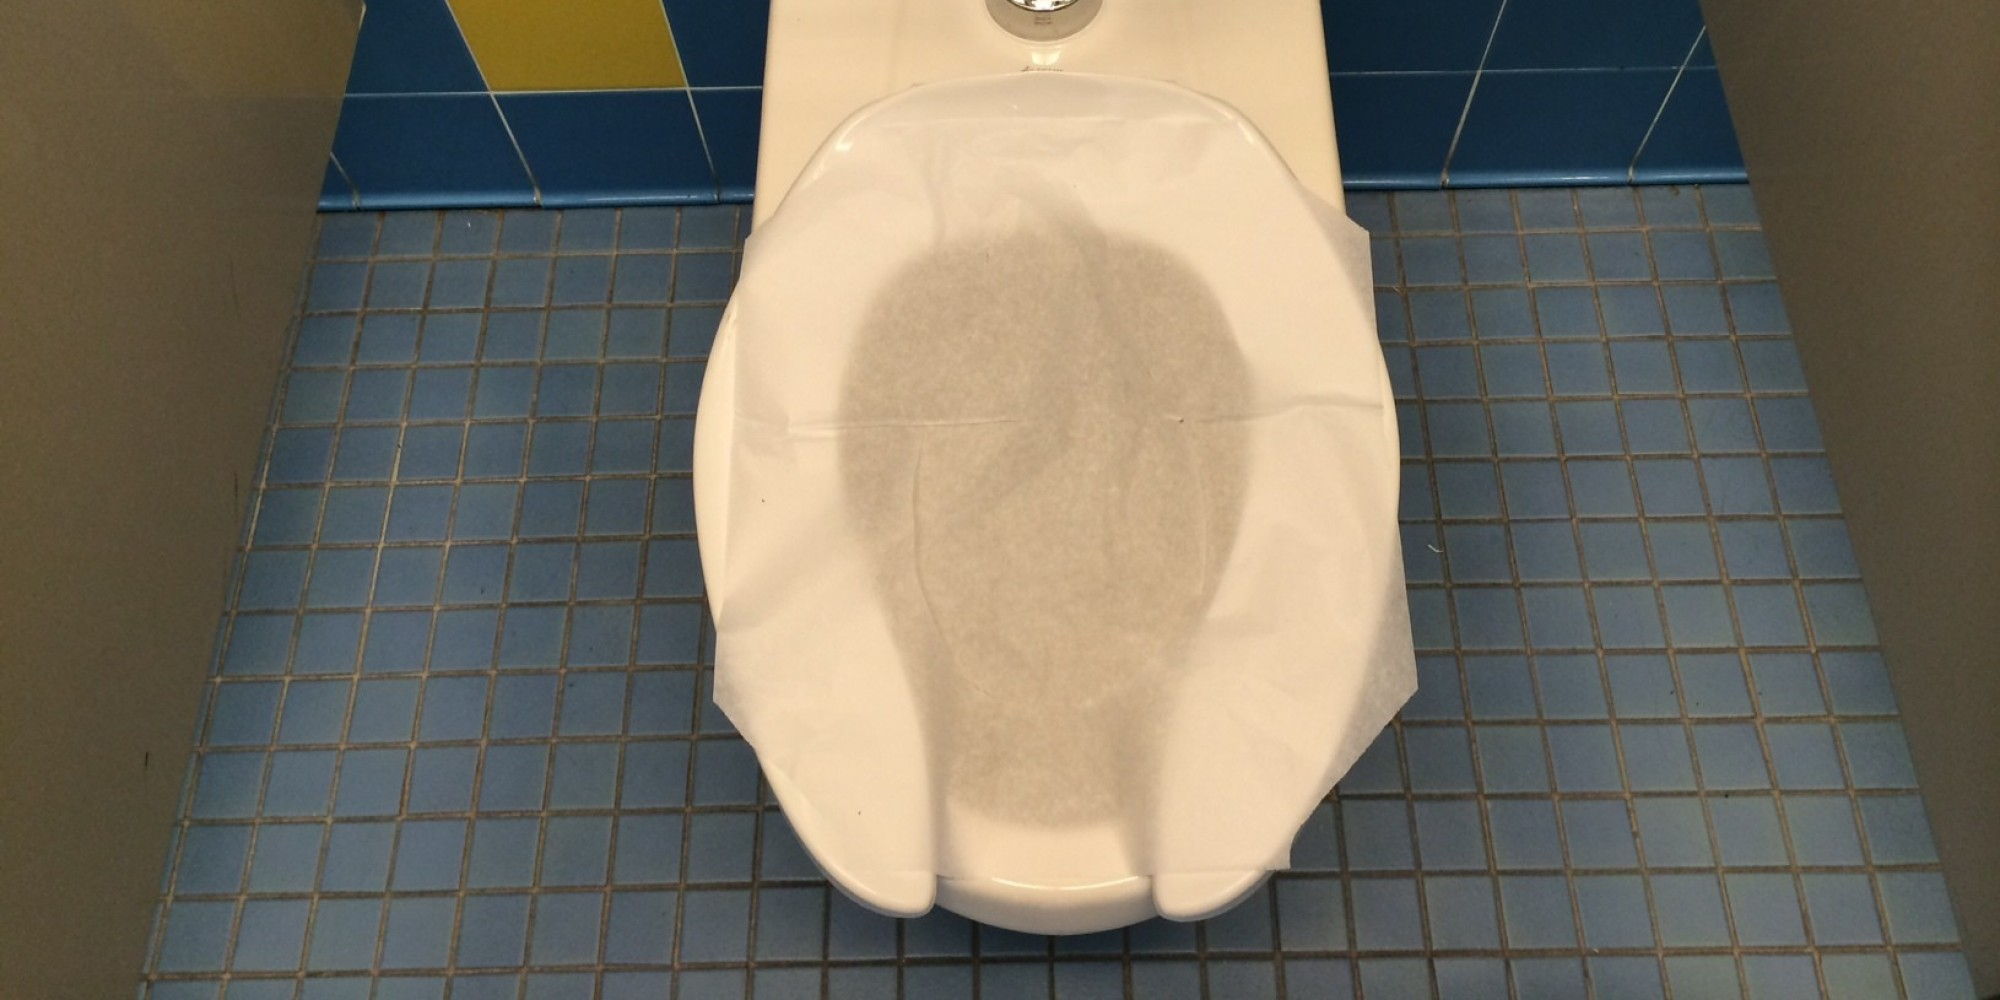 Why Using Toilet Seat Liners Is Basically Pointless